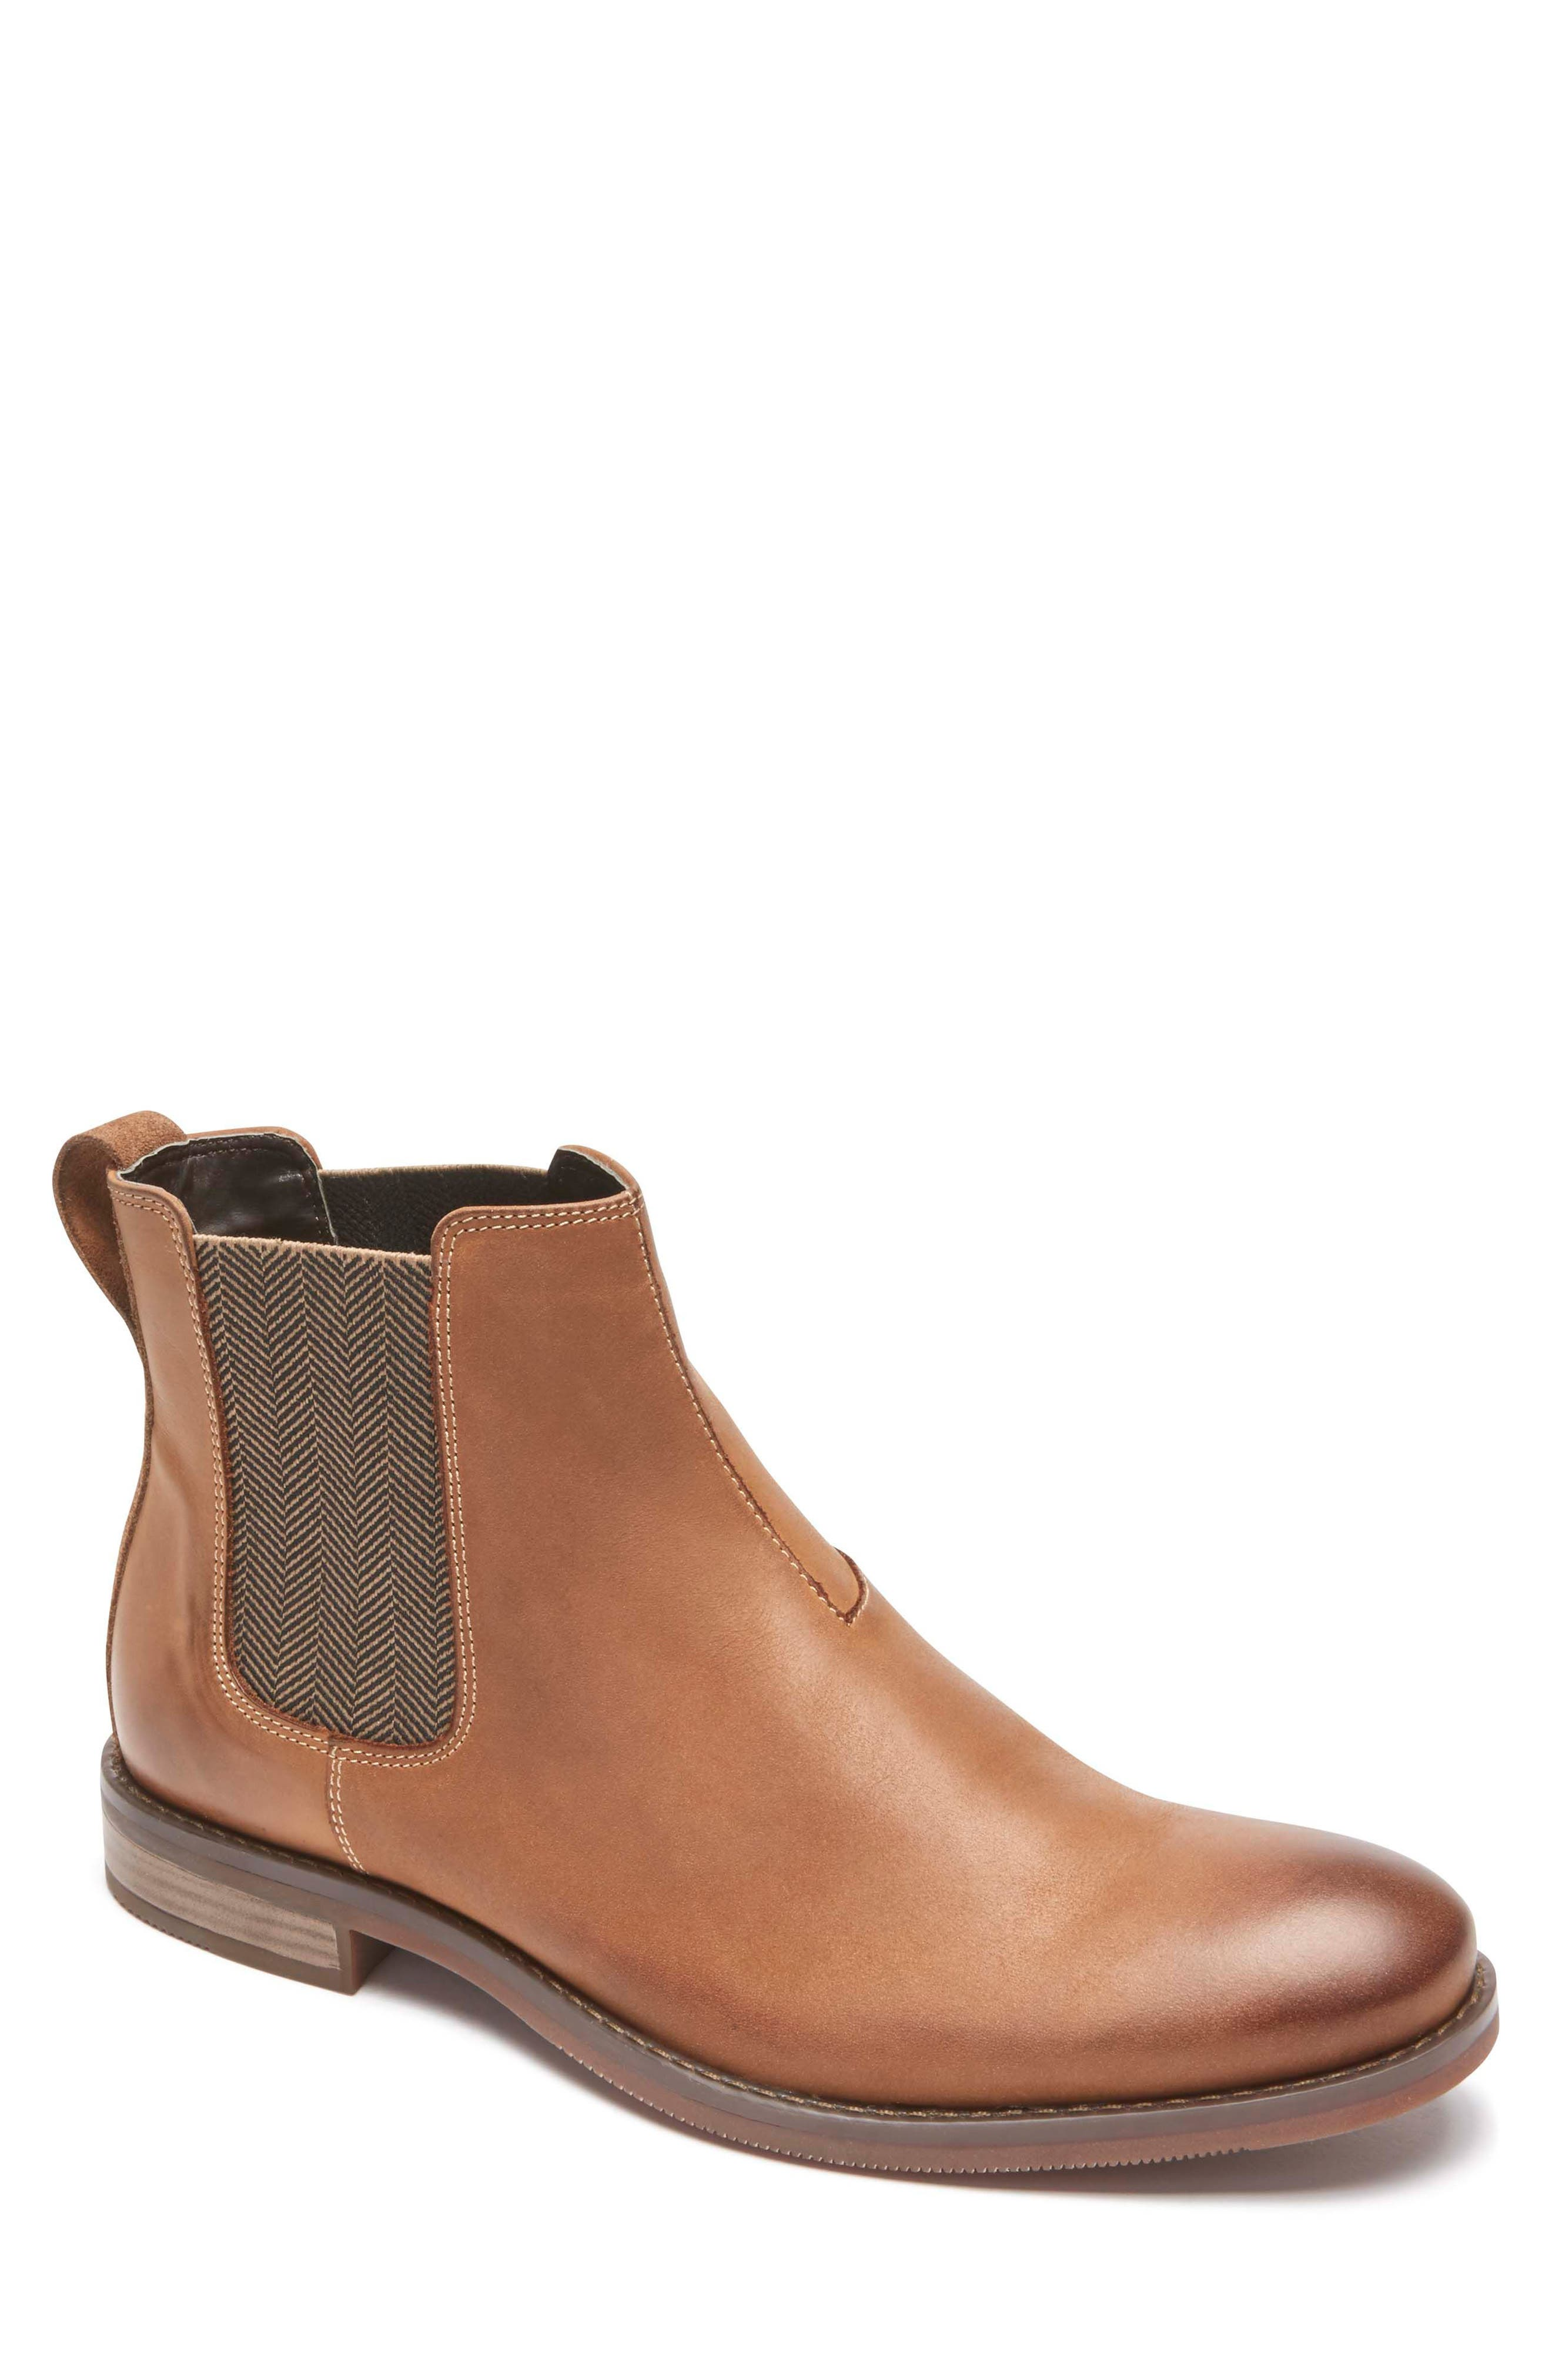 Wynstin Chelsea Boot,                         Main,                         color, Tobacco Leather